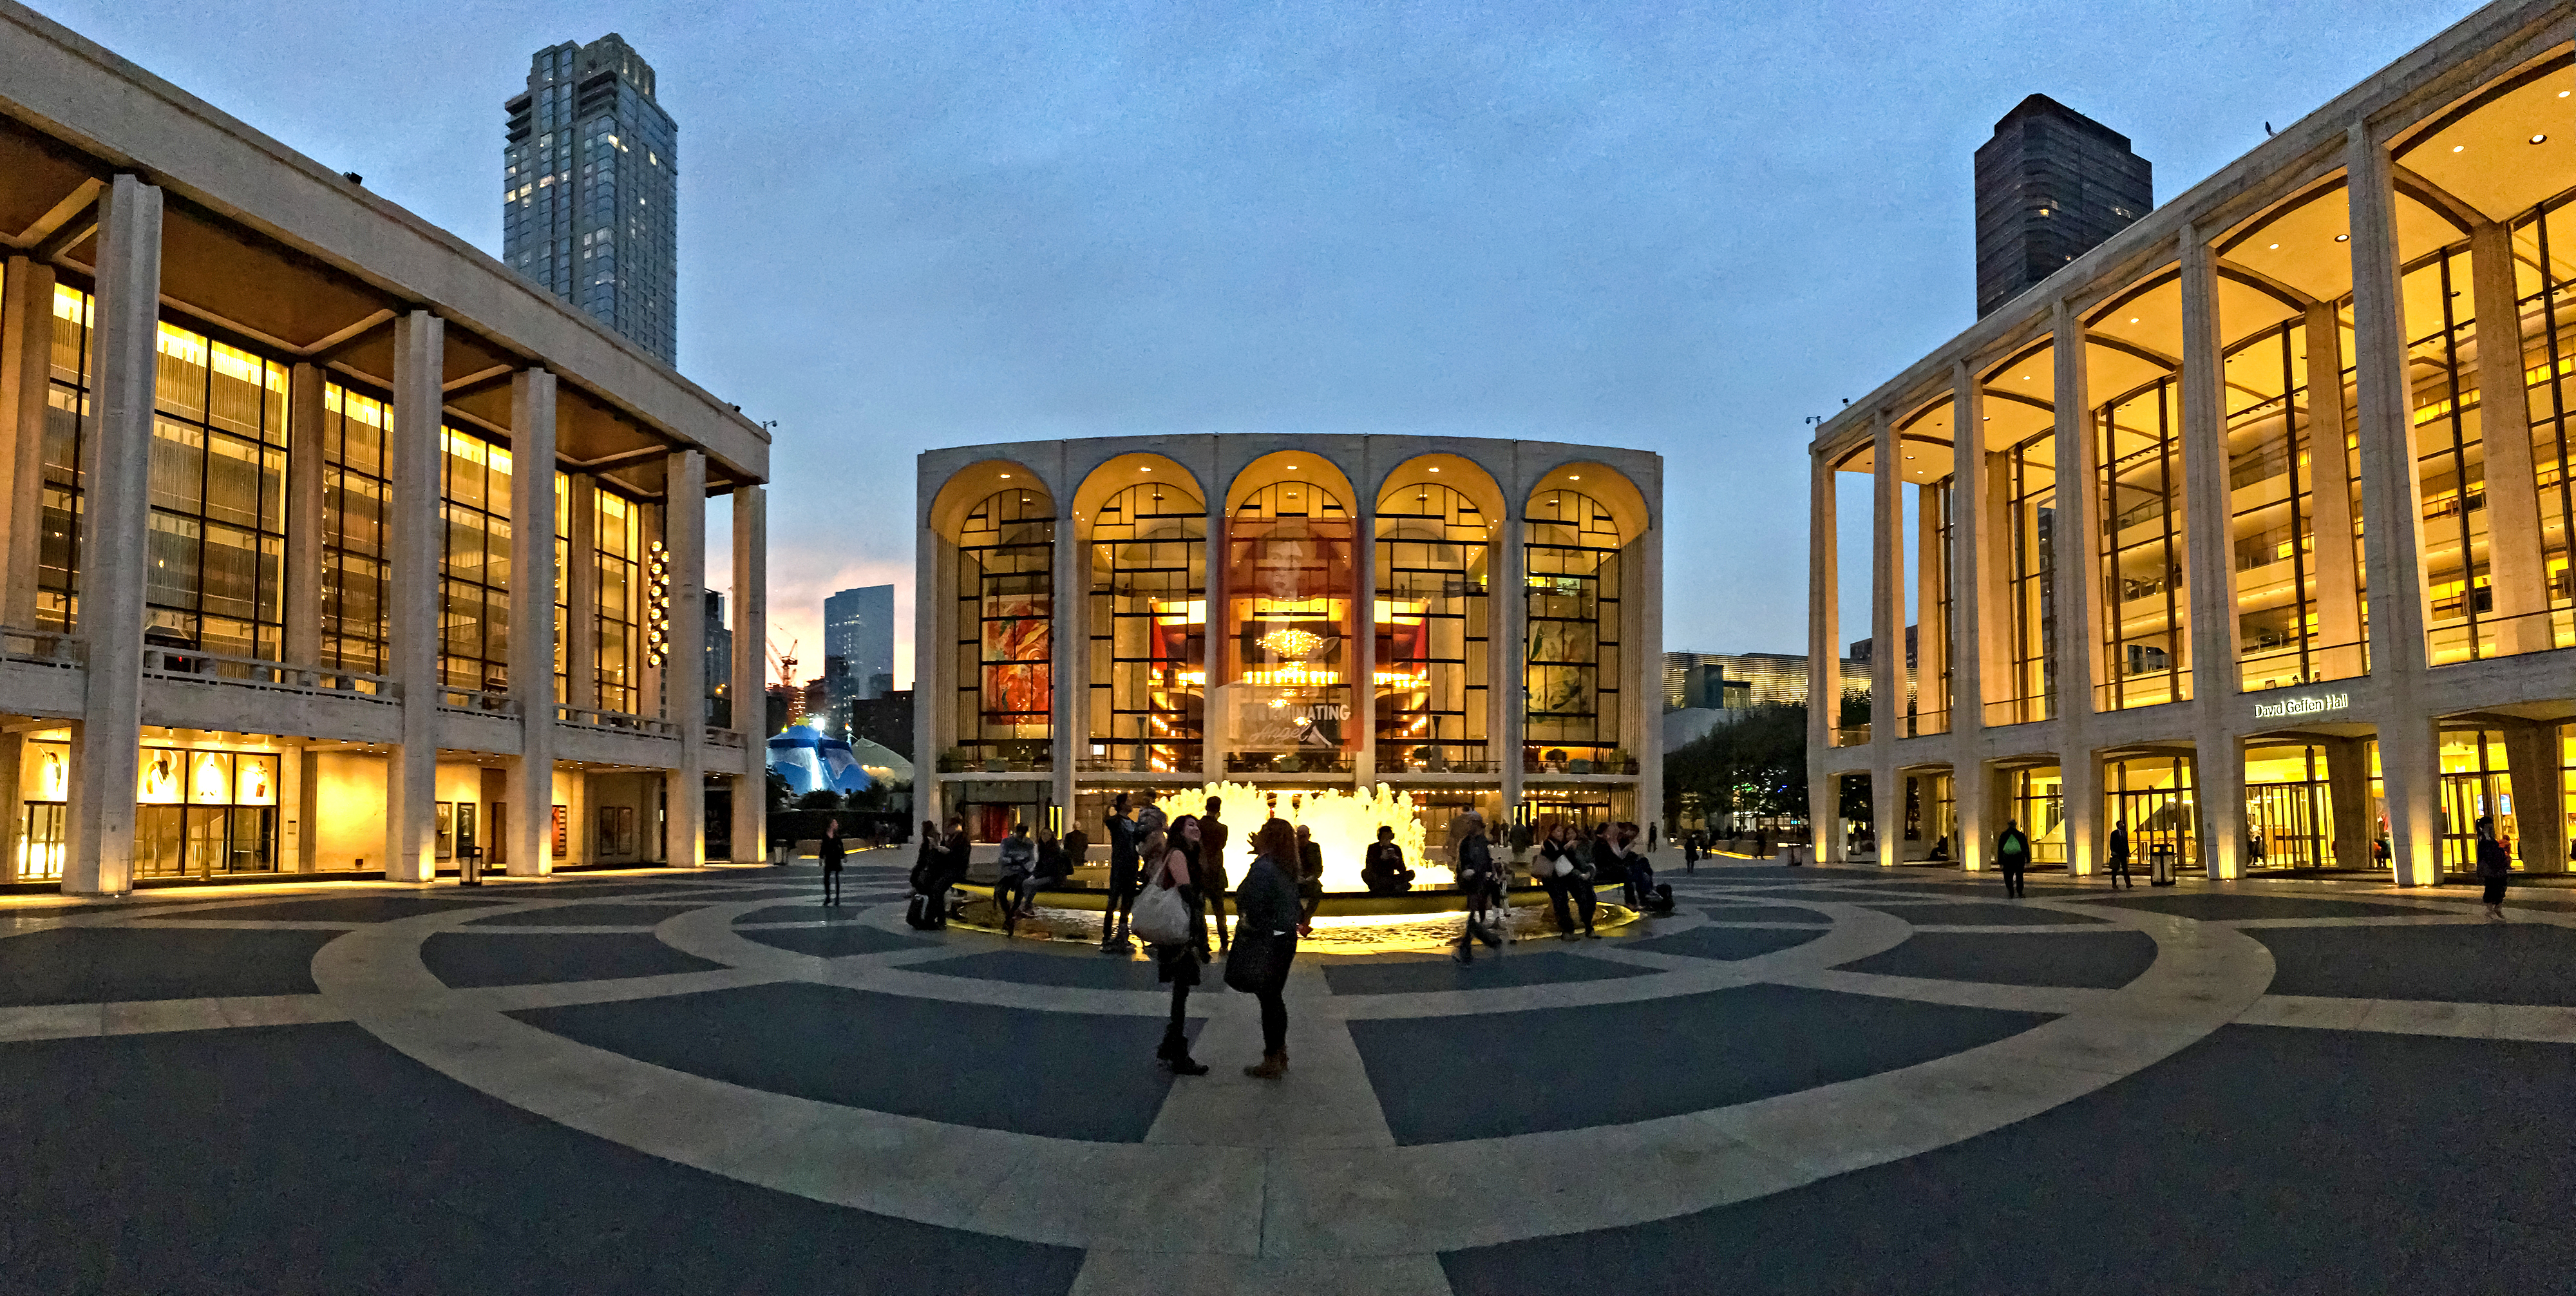 lincoln-center-6pm28x56©DonKellogg2017